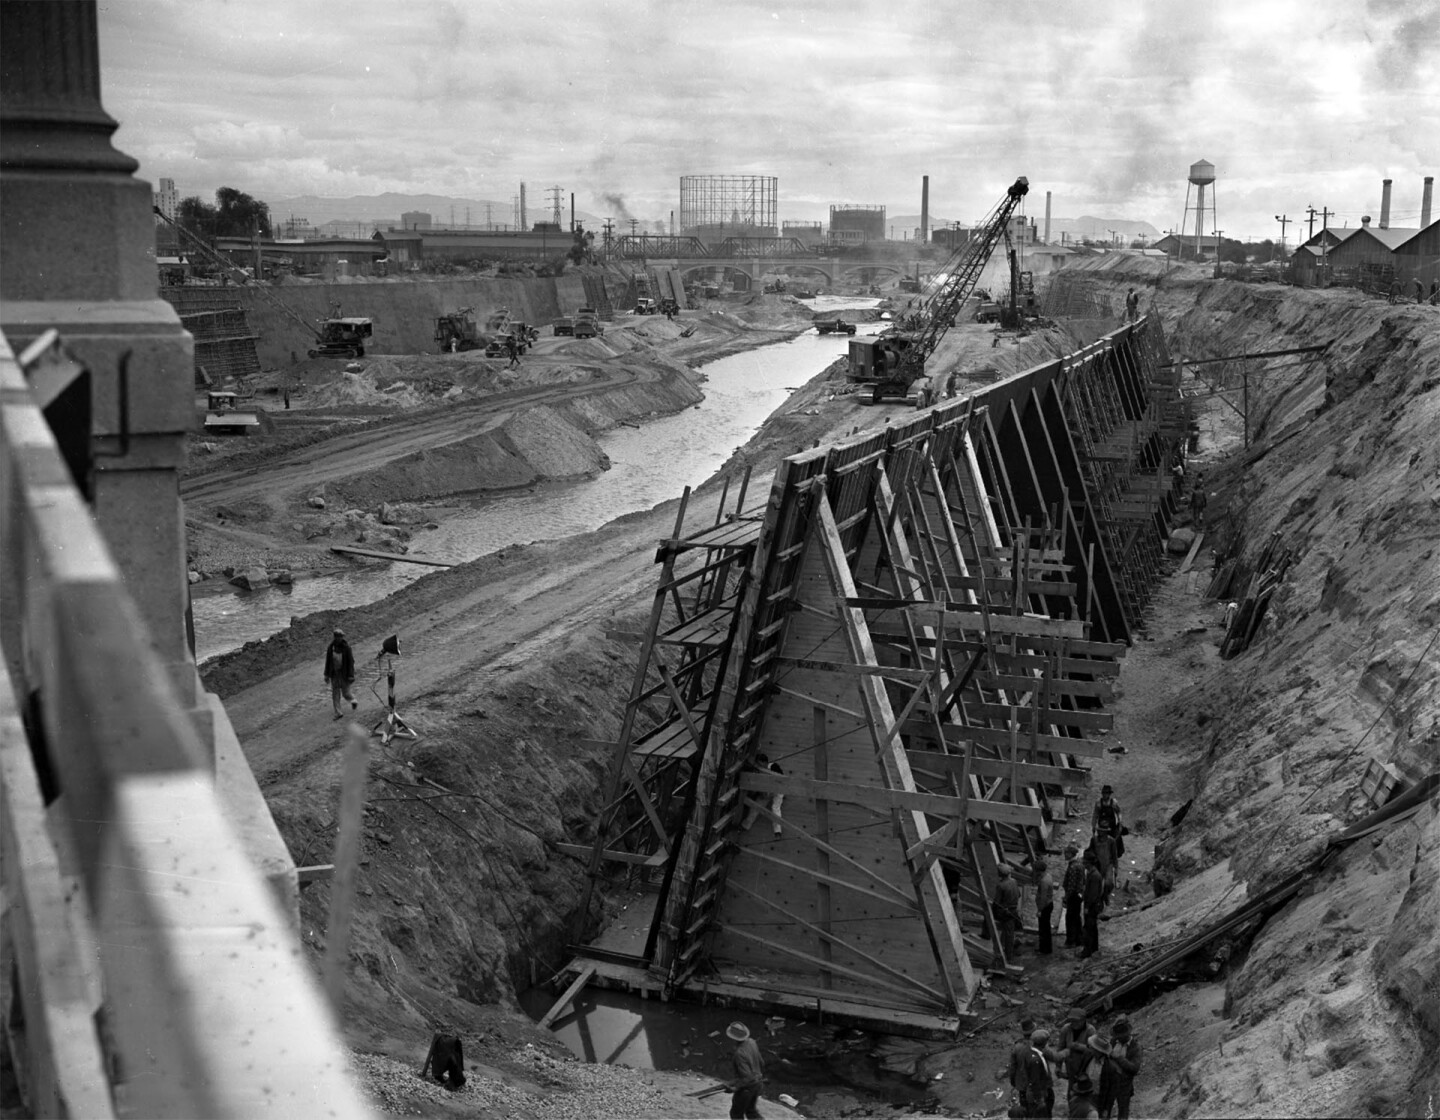 Workers building framing for concrete and digging during reconstruction of Los Angeles River, Calif., 1938